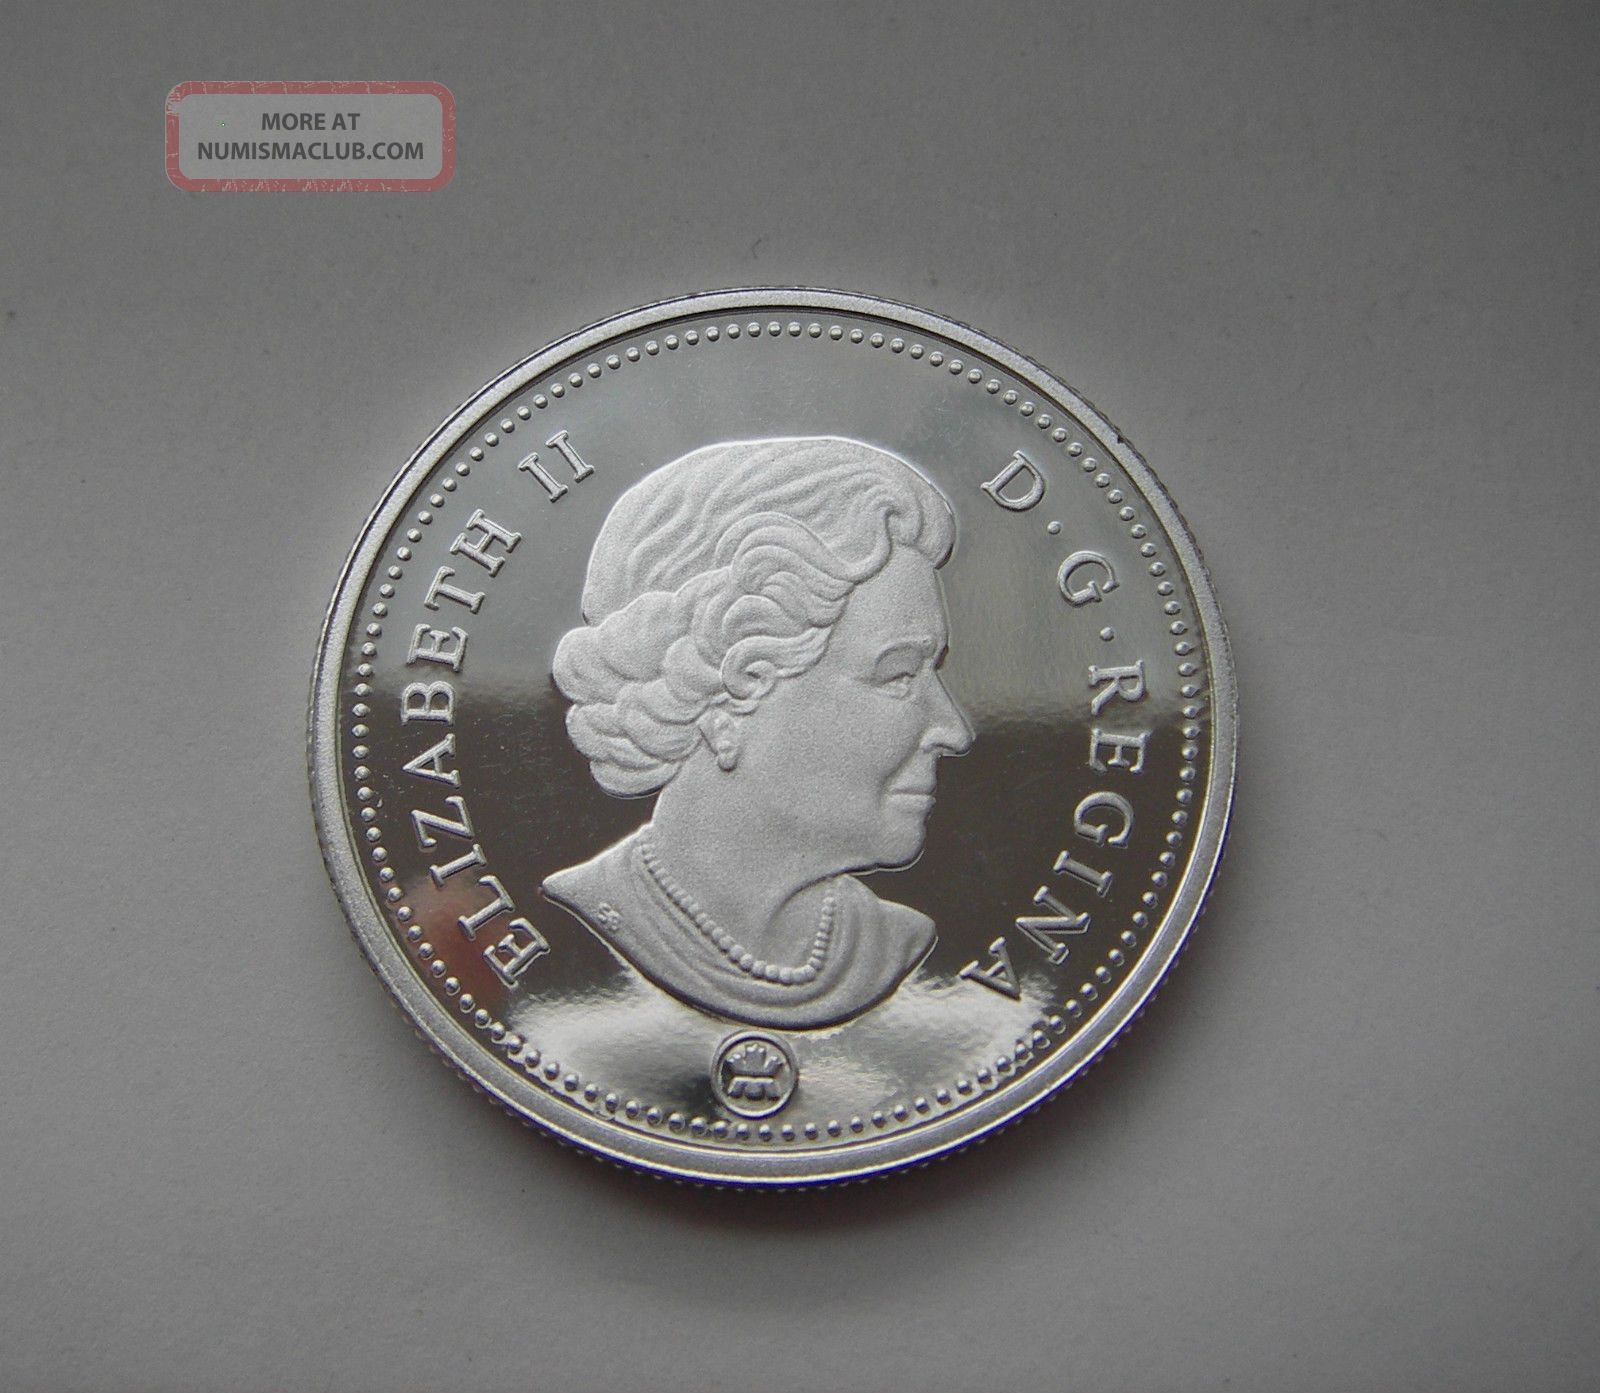 999 Silver Coin Royal Canadian Rare 2012 Canada 50